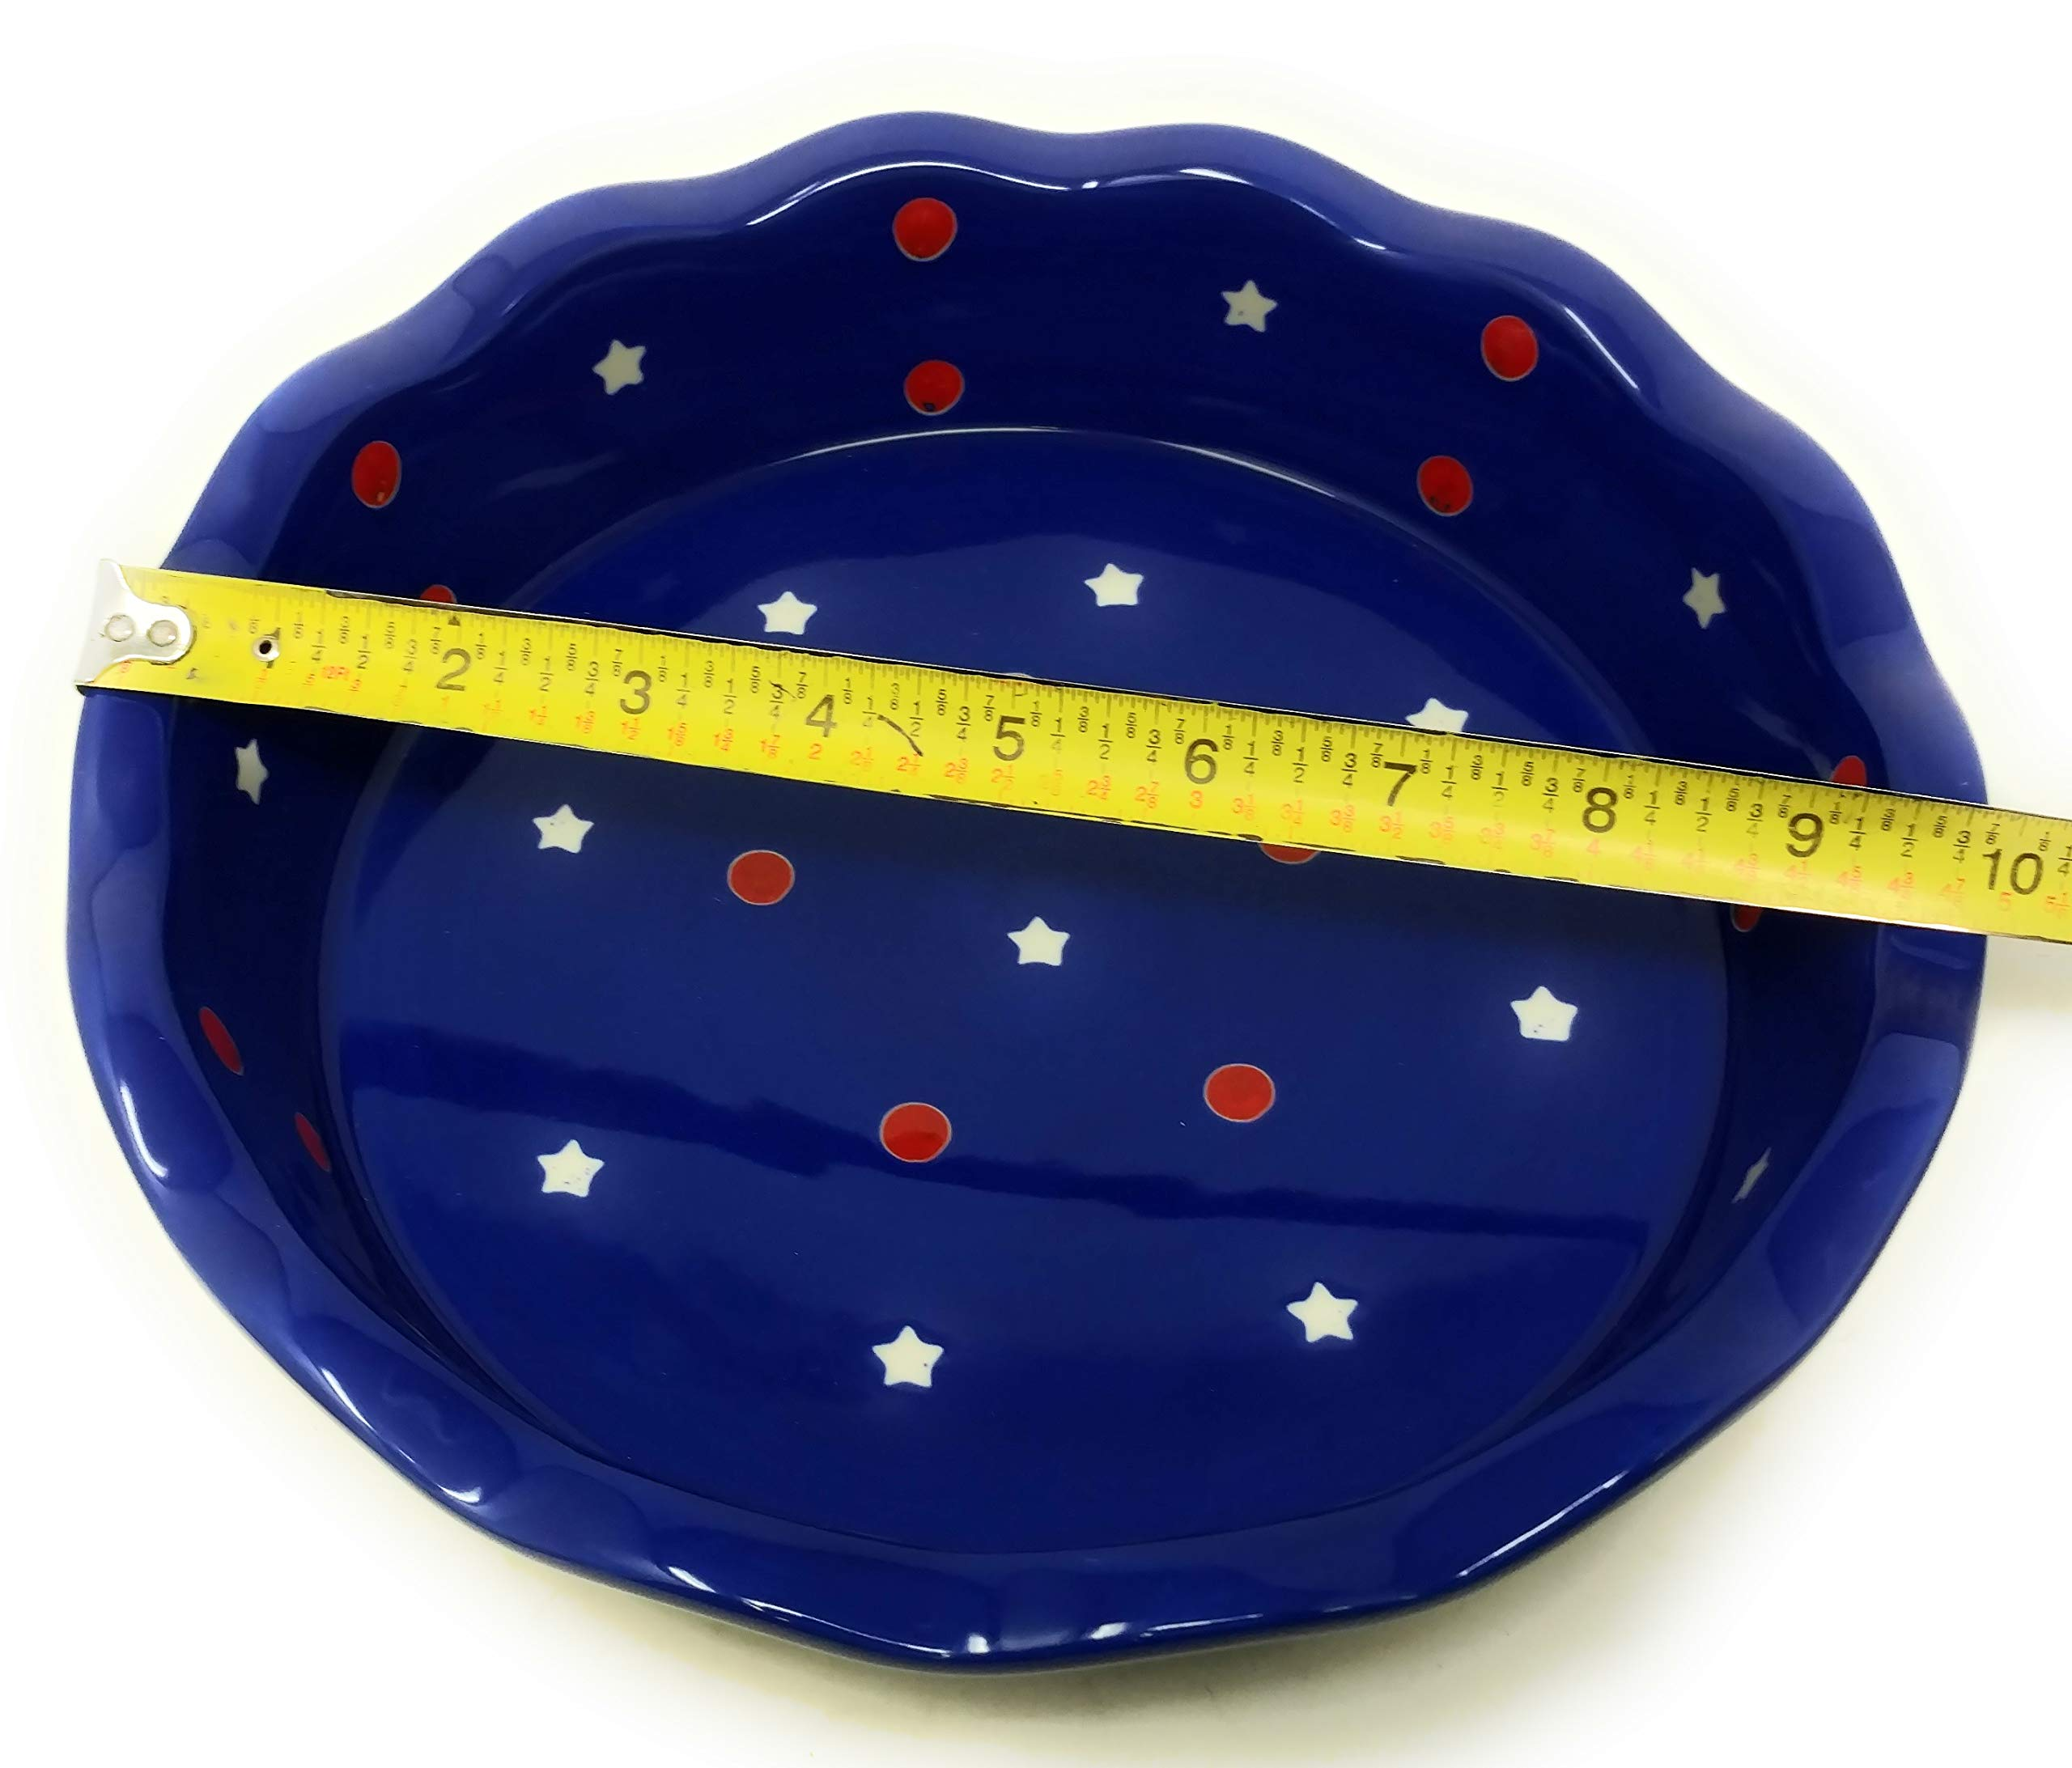 Temp-tations Red, White & Blue 10'' x 2.25'' Pie Pan, Scalloped, Deep Dish Pizza or Quiche (Red) by Stoneware (Image #5)